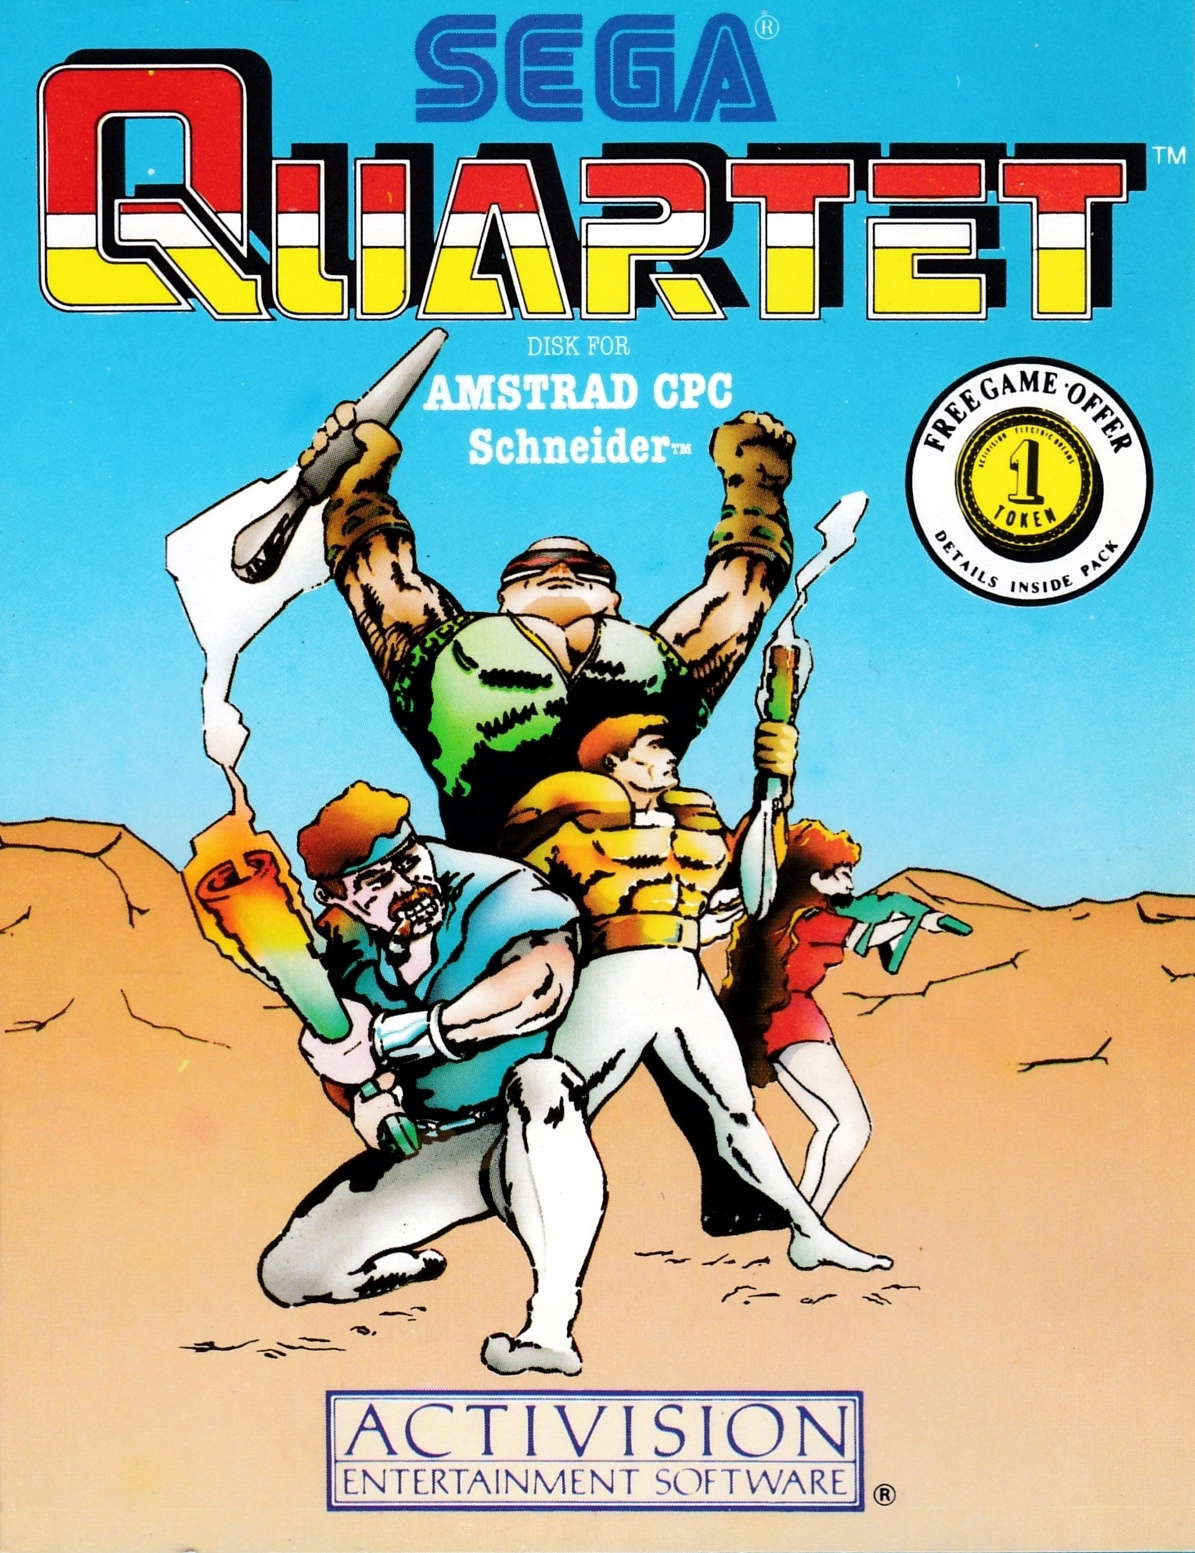 cover of the Amstrad CPC game Quartet  by GameBase CPC